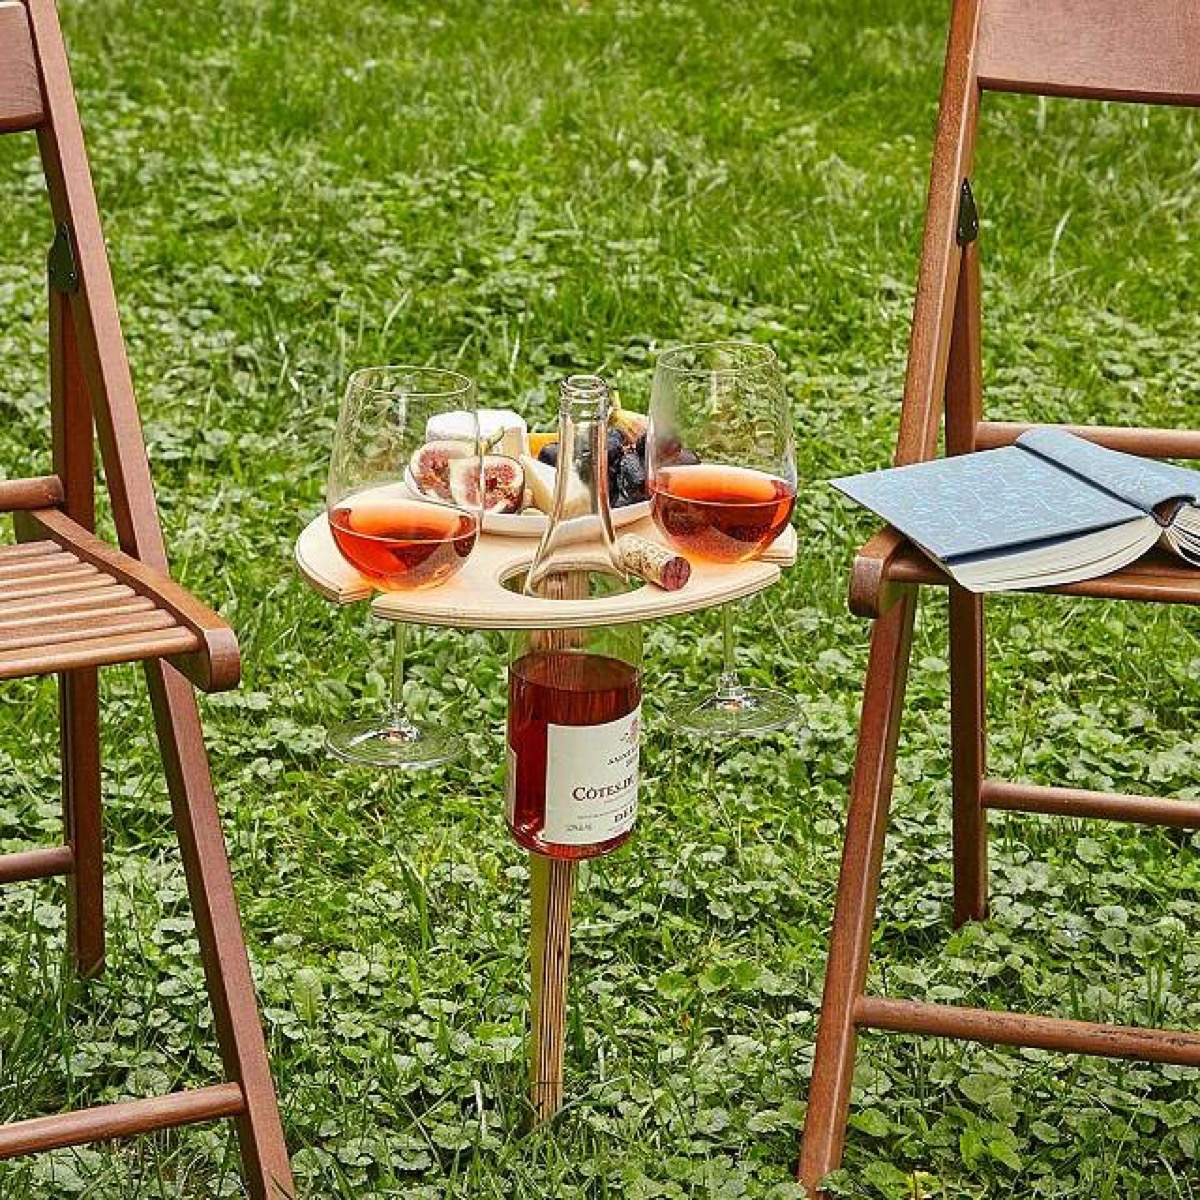 wine on wooden table and chairs on grass